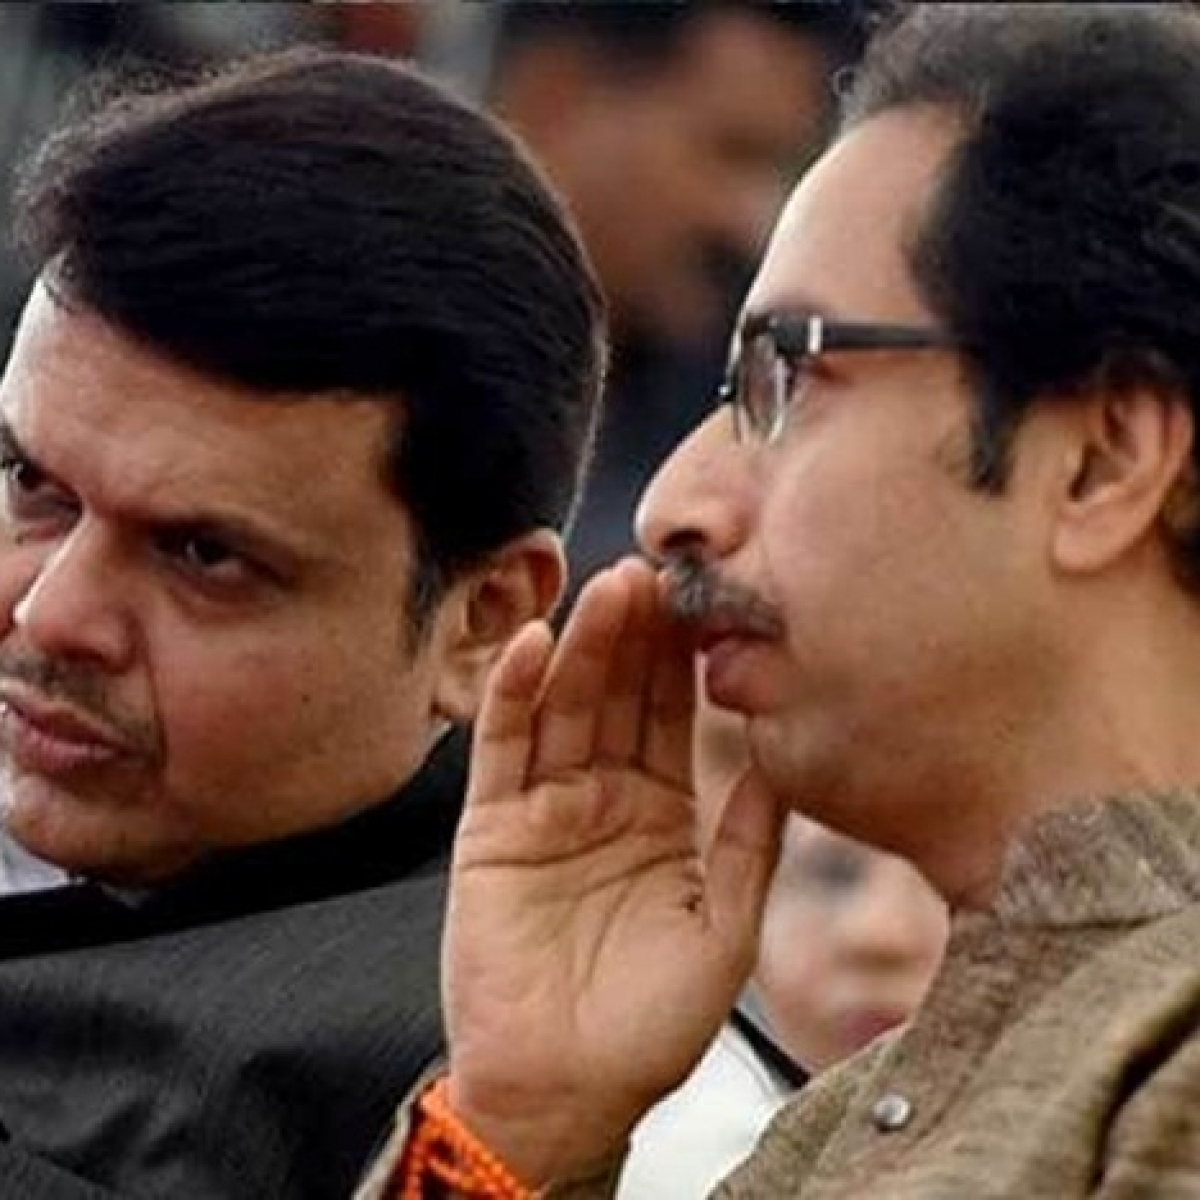 President's rule threat by Sudhir Mungantiwar an insult to people's mandate: Shiv Sena